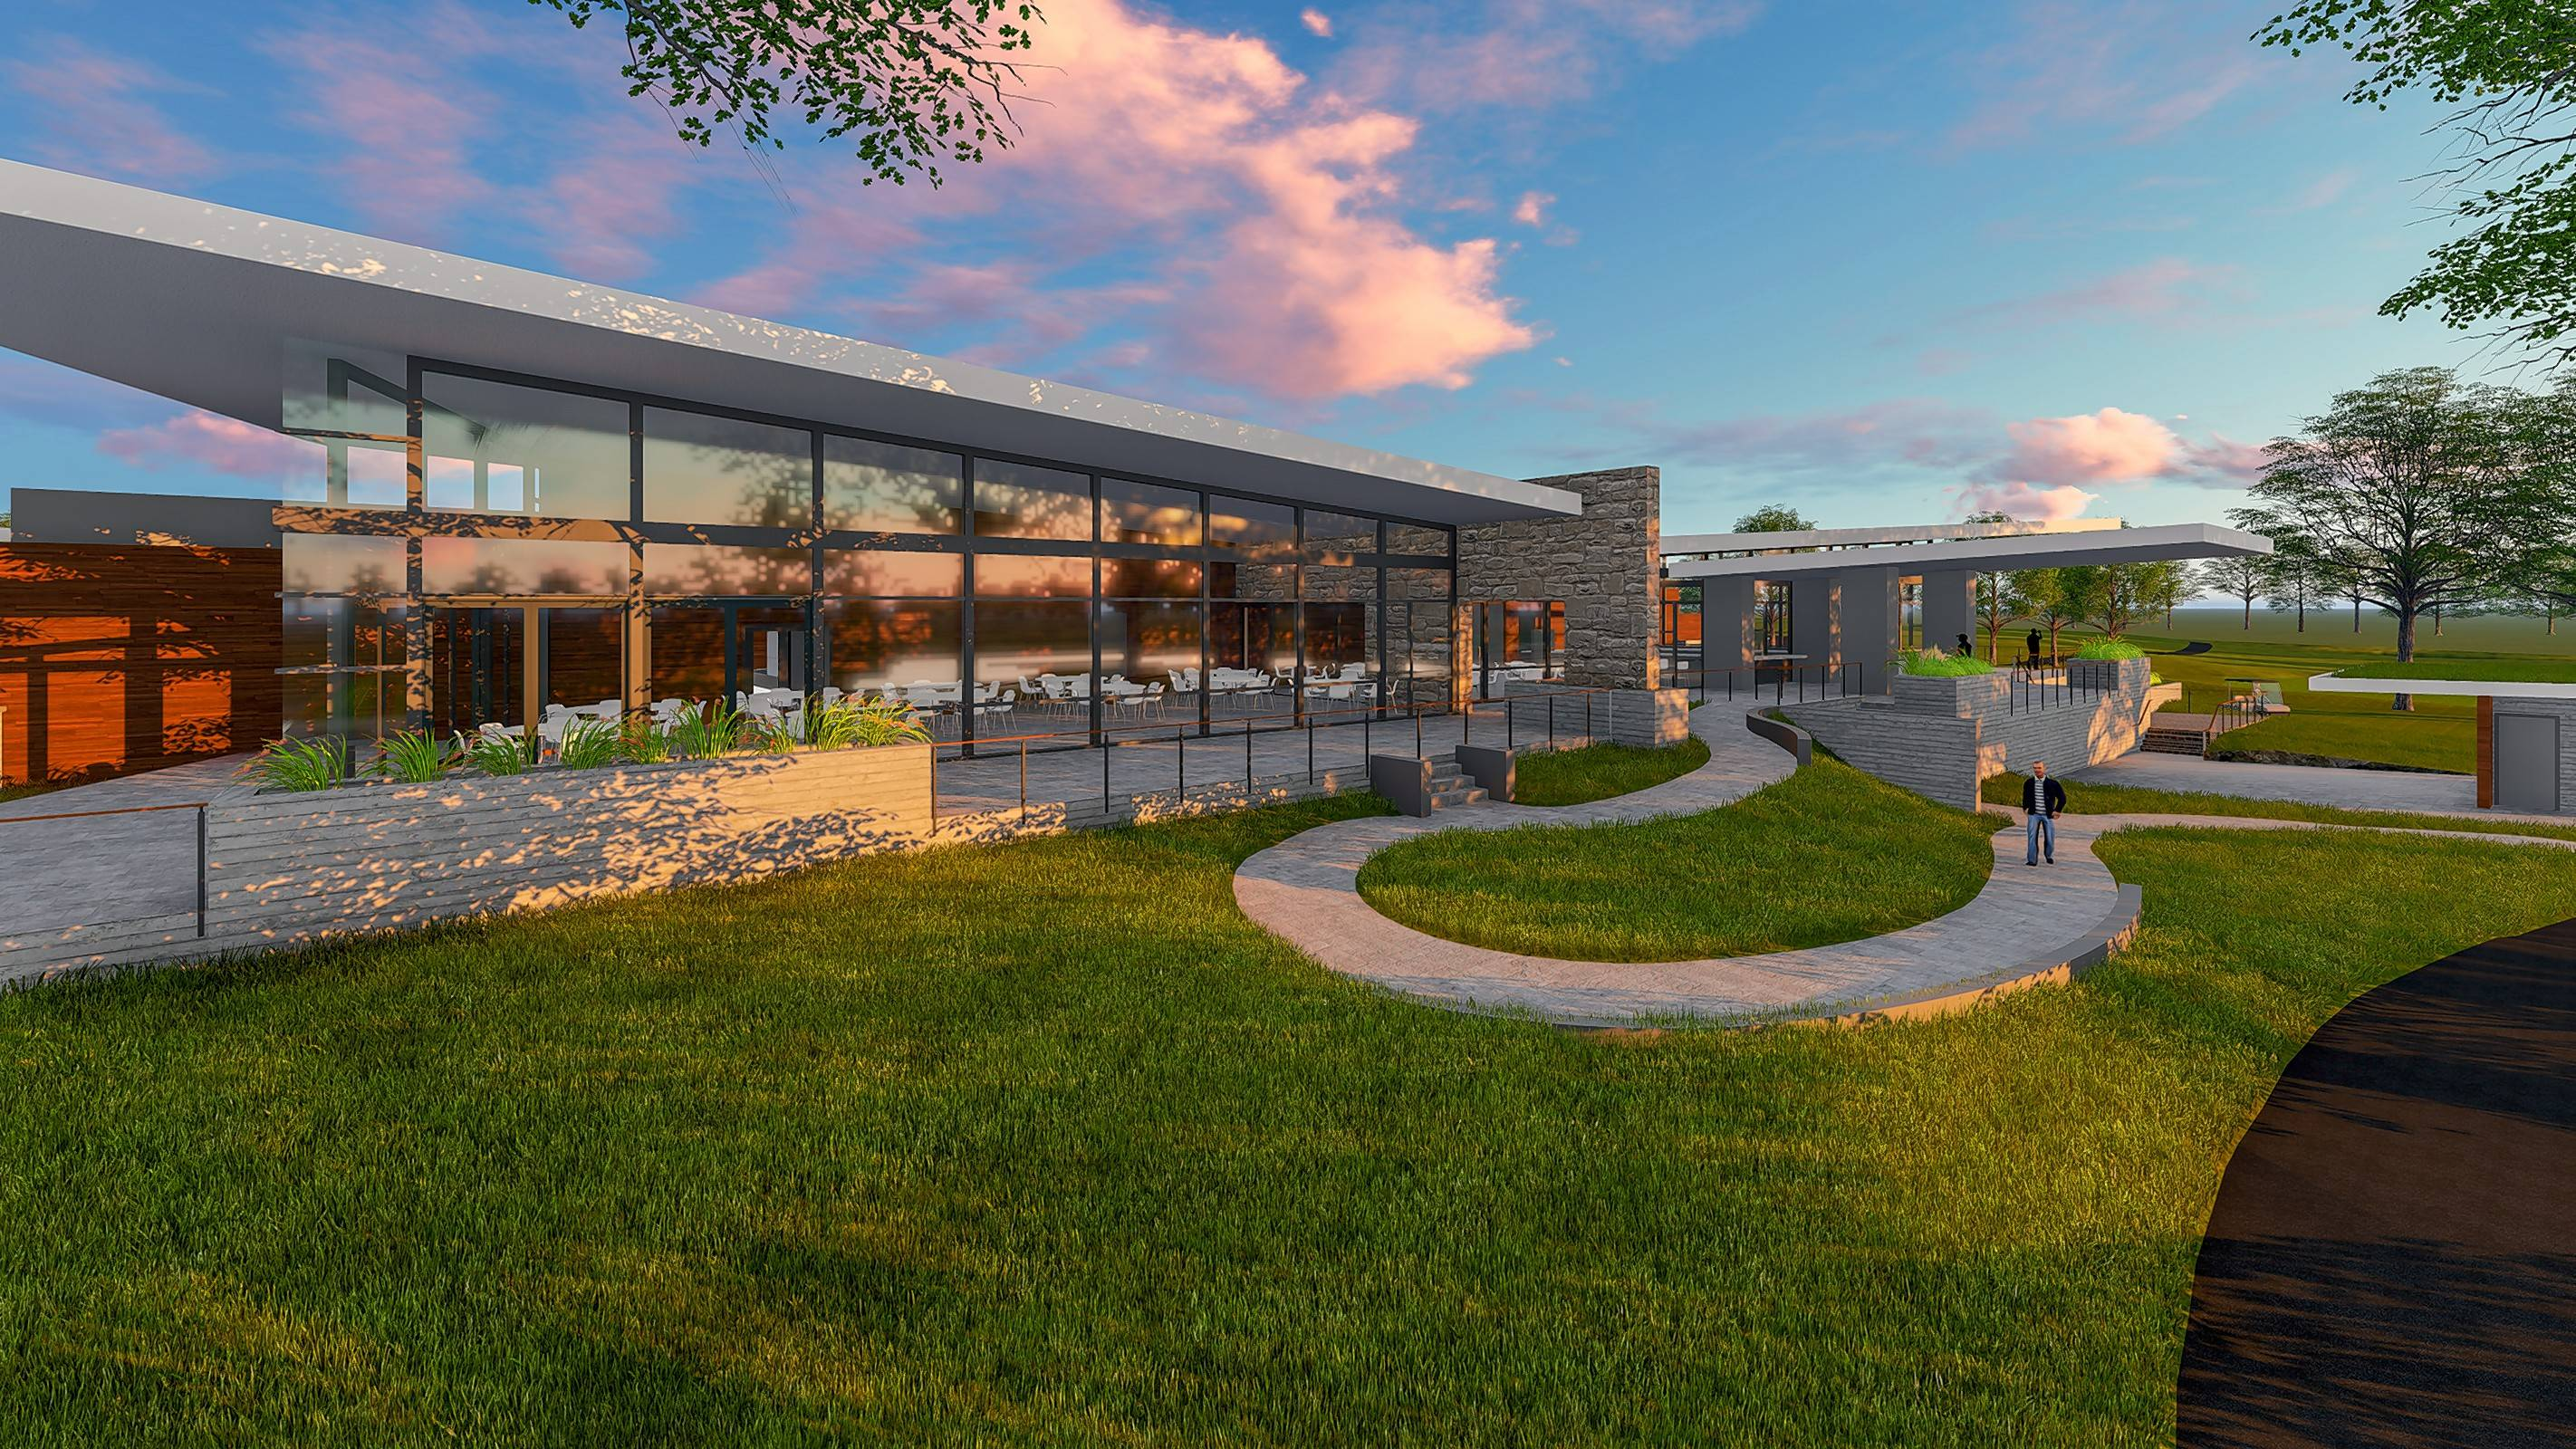 DuPage forest preserve continues to pursue clubhouse project